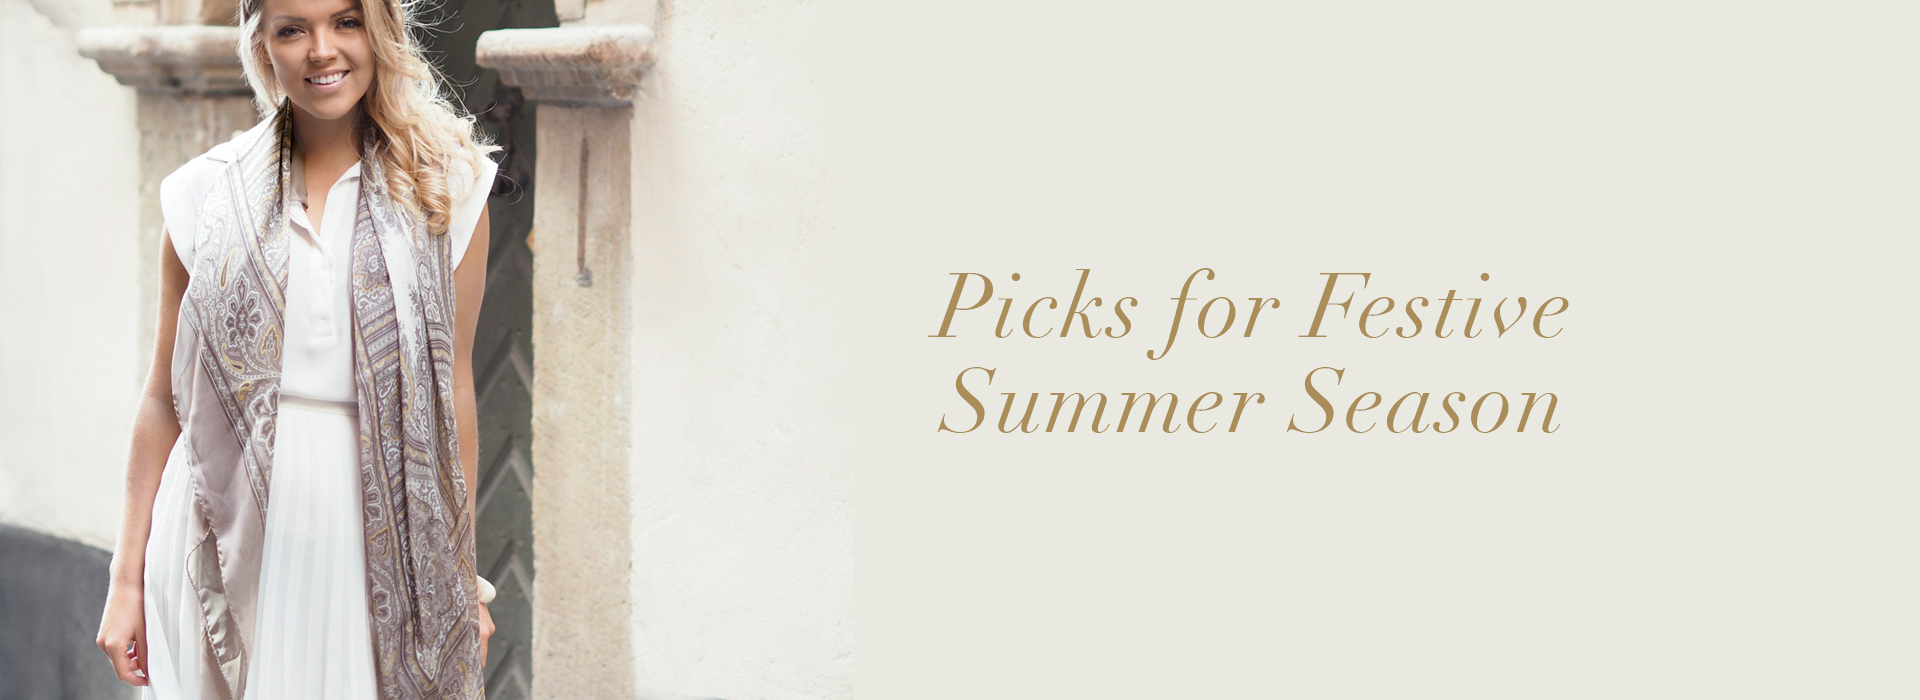 Picks for Festive Summer Season